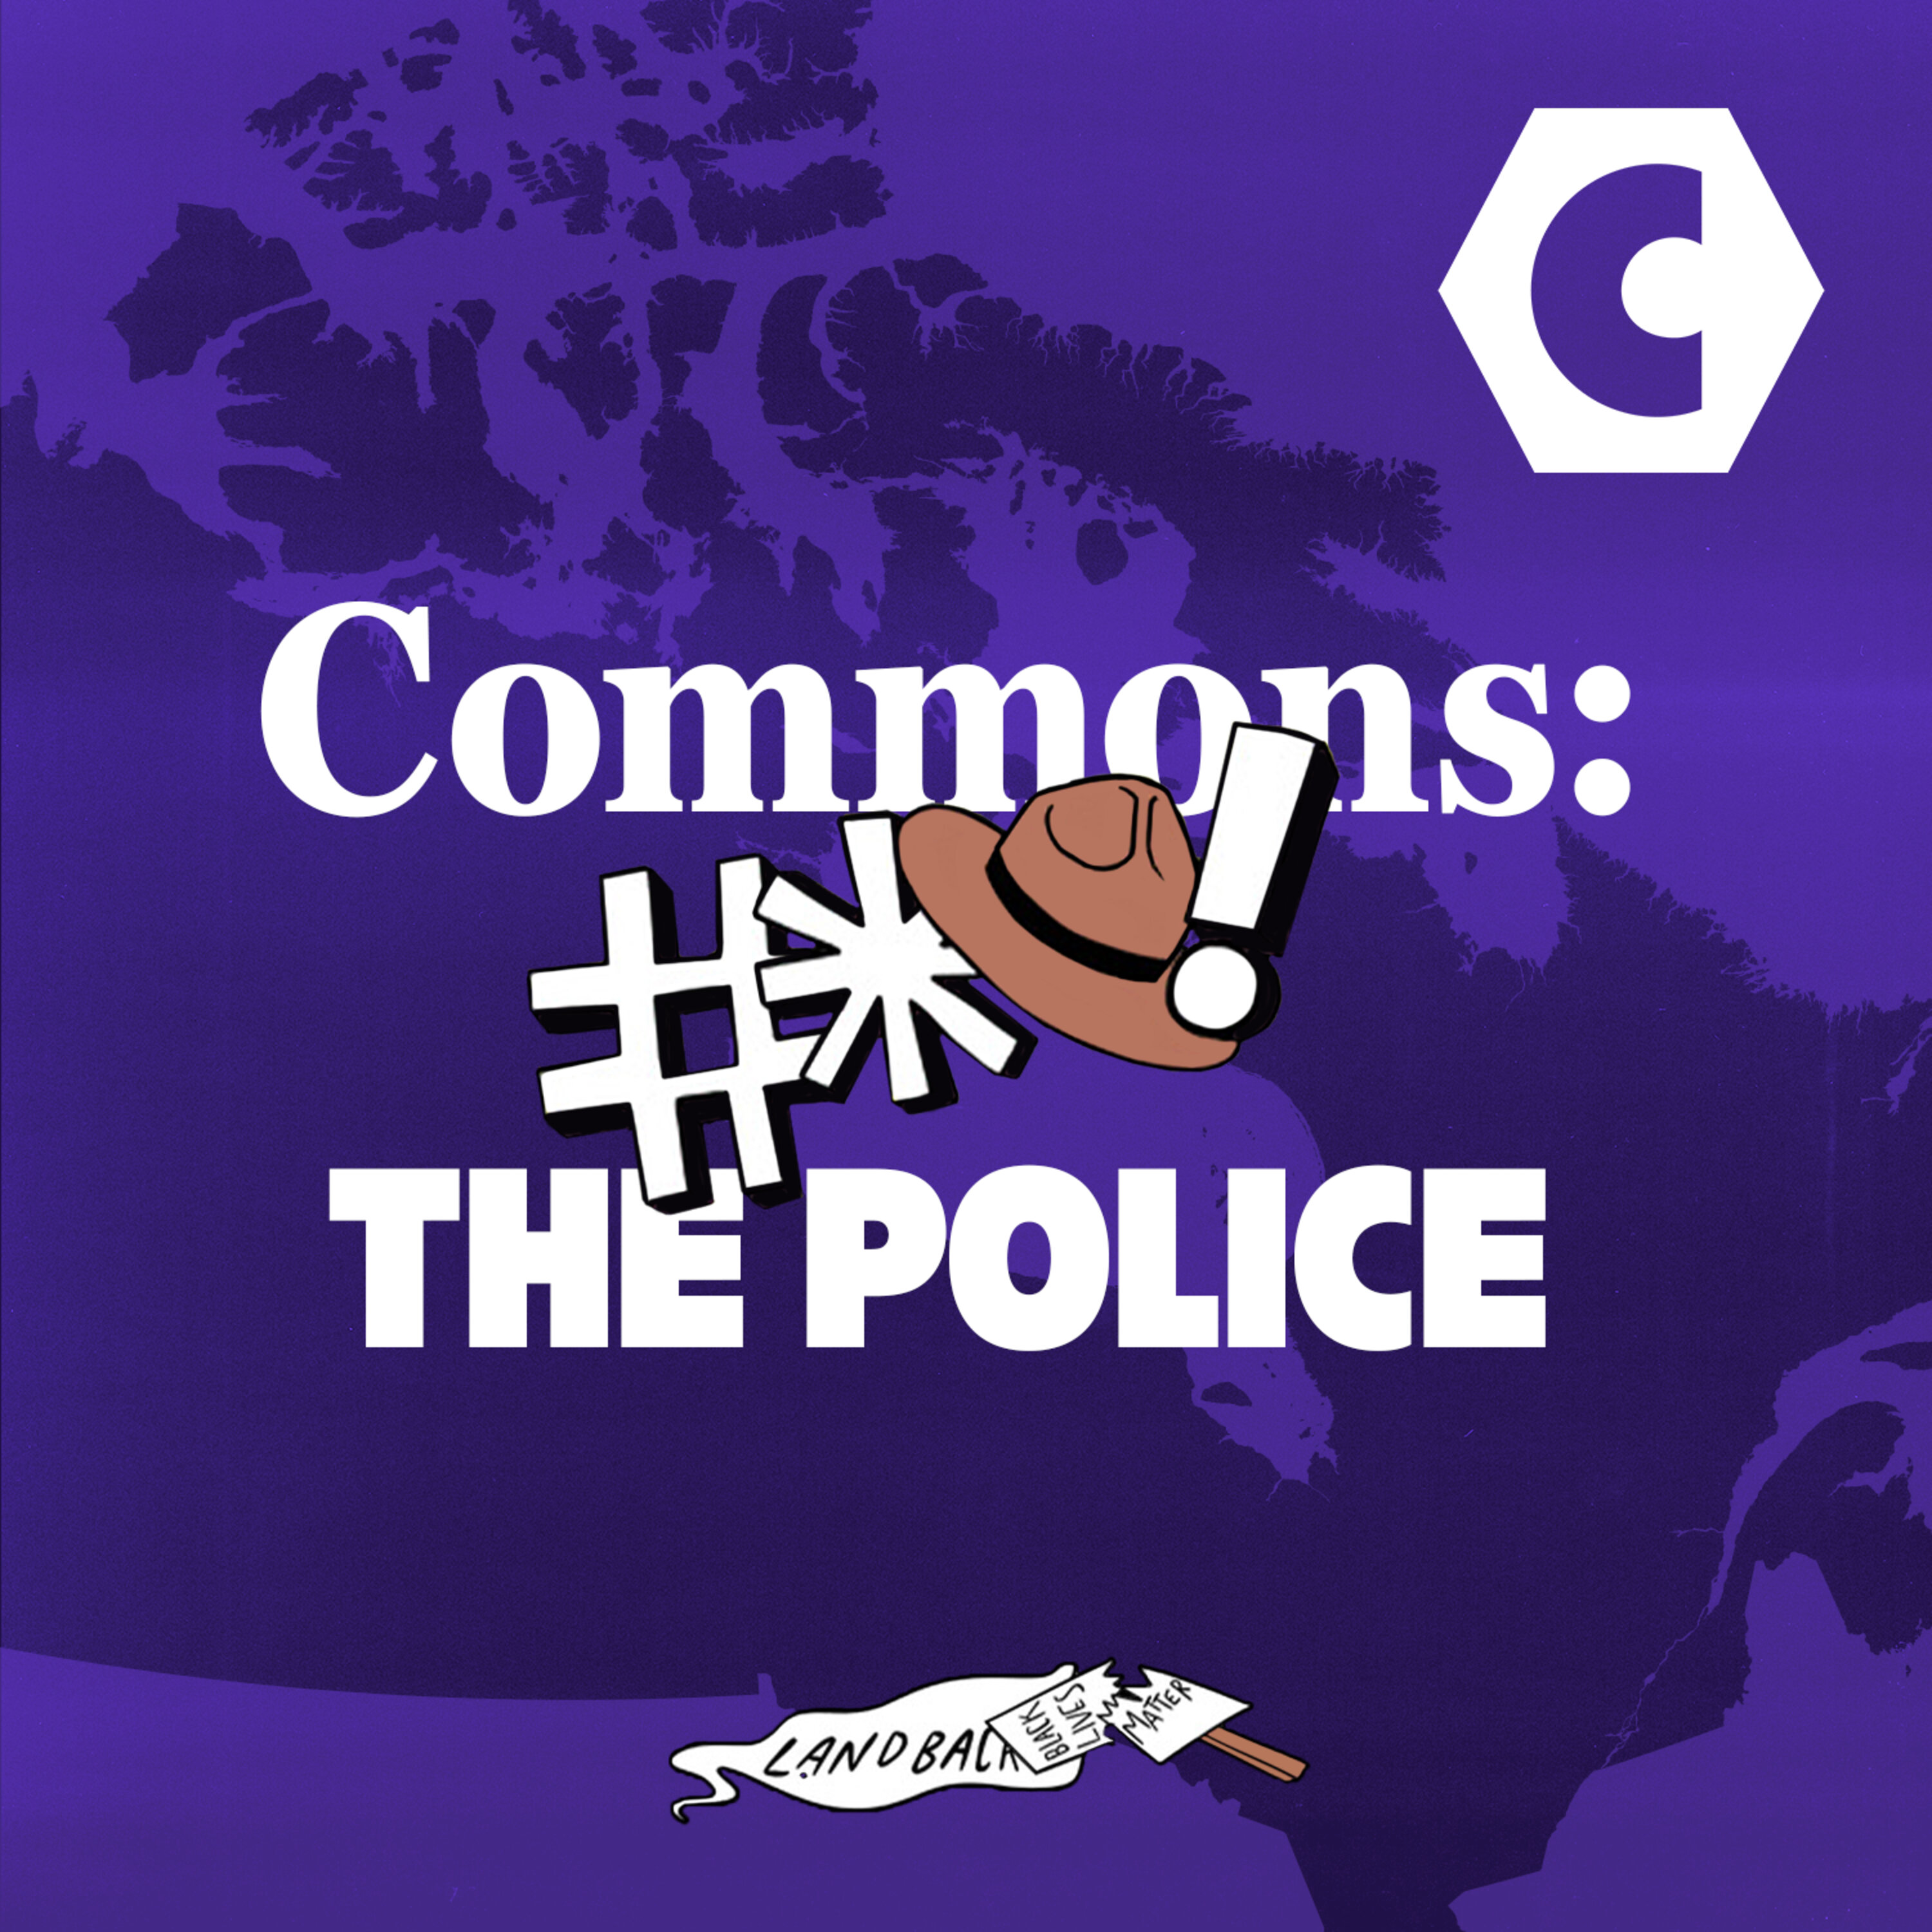 THE POLICE 2 - The Secret History of the RCMP